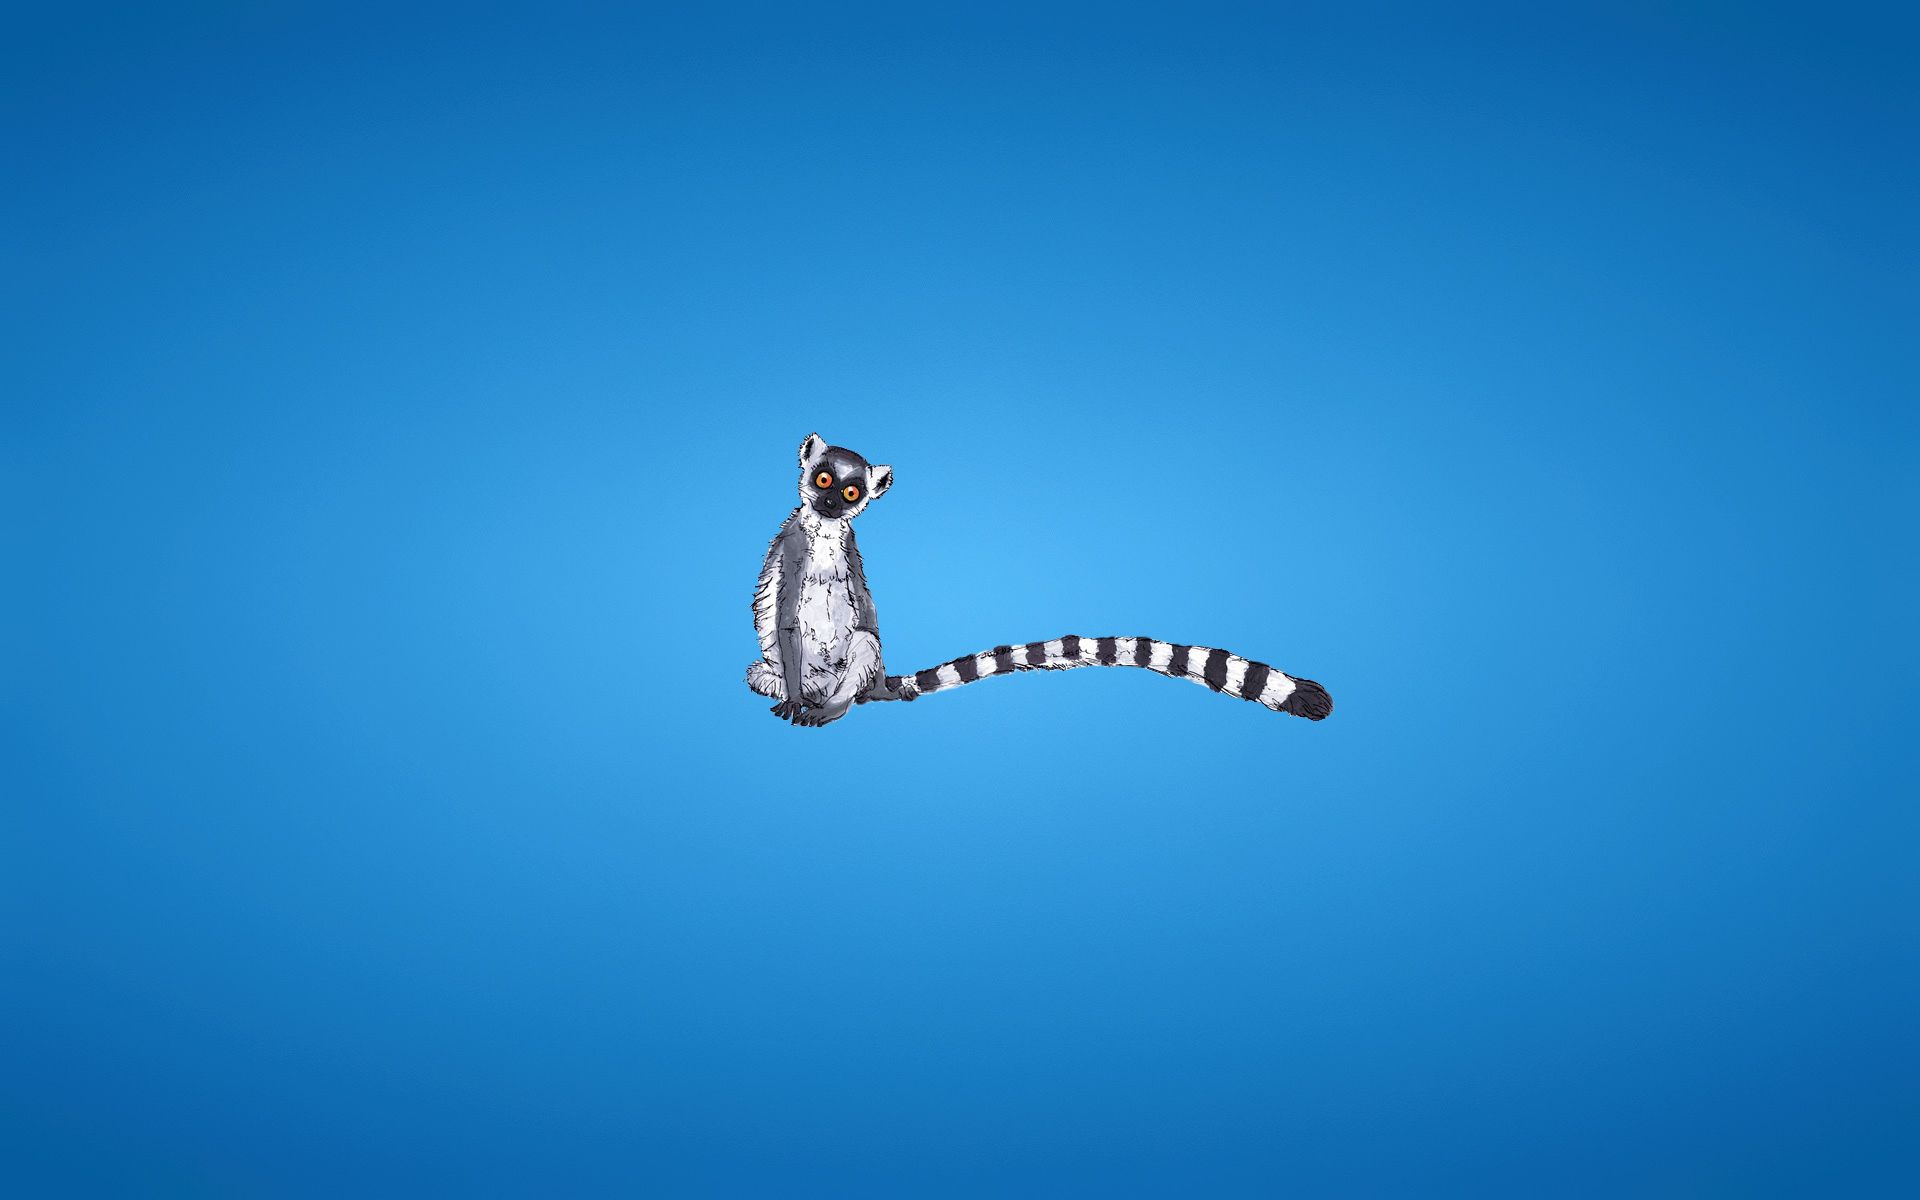 127654 download wallpaper Vector, Lemur, Blue Background, Tail, Striped, Minimalism screensavers and pictures for free